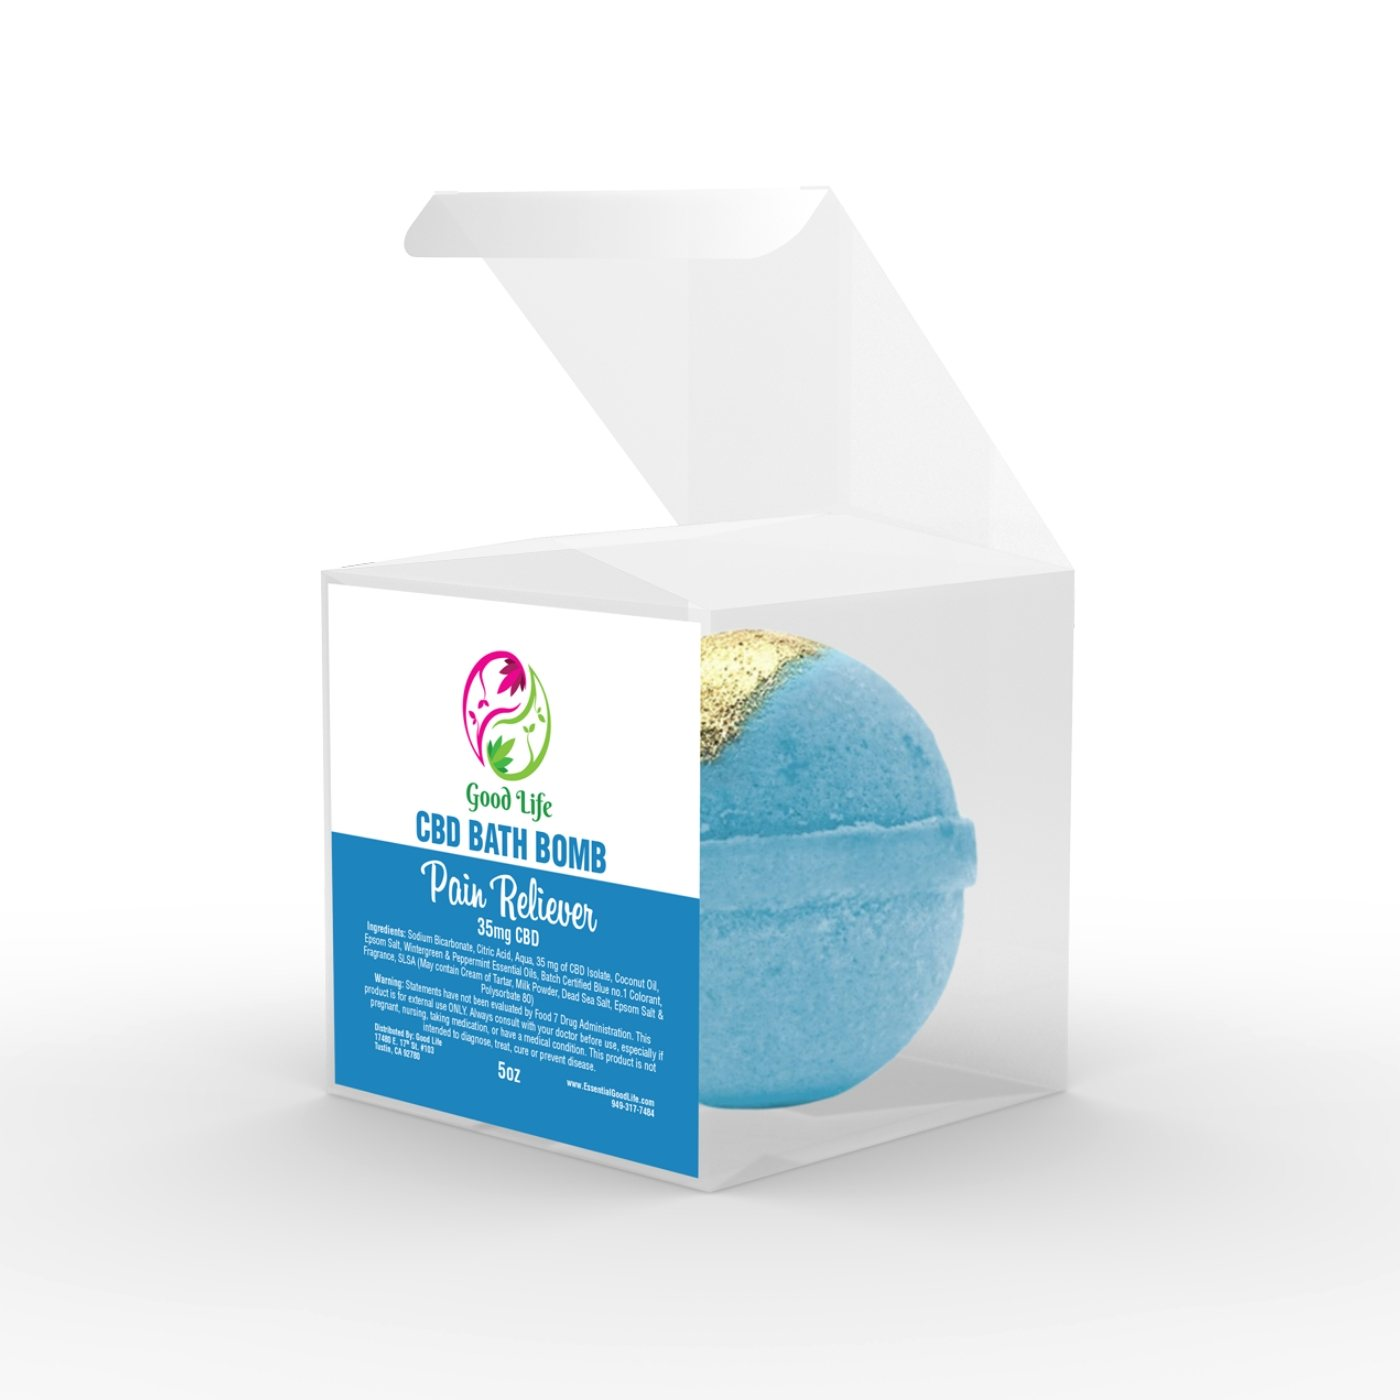 Pain Reliever CBD oil Bath Bomb